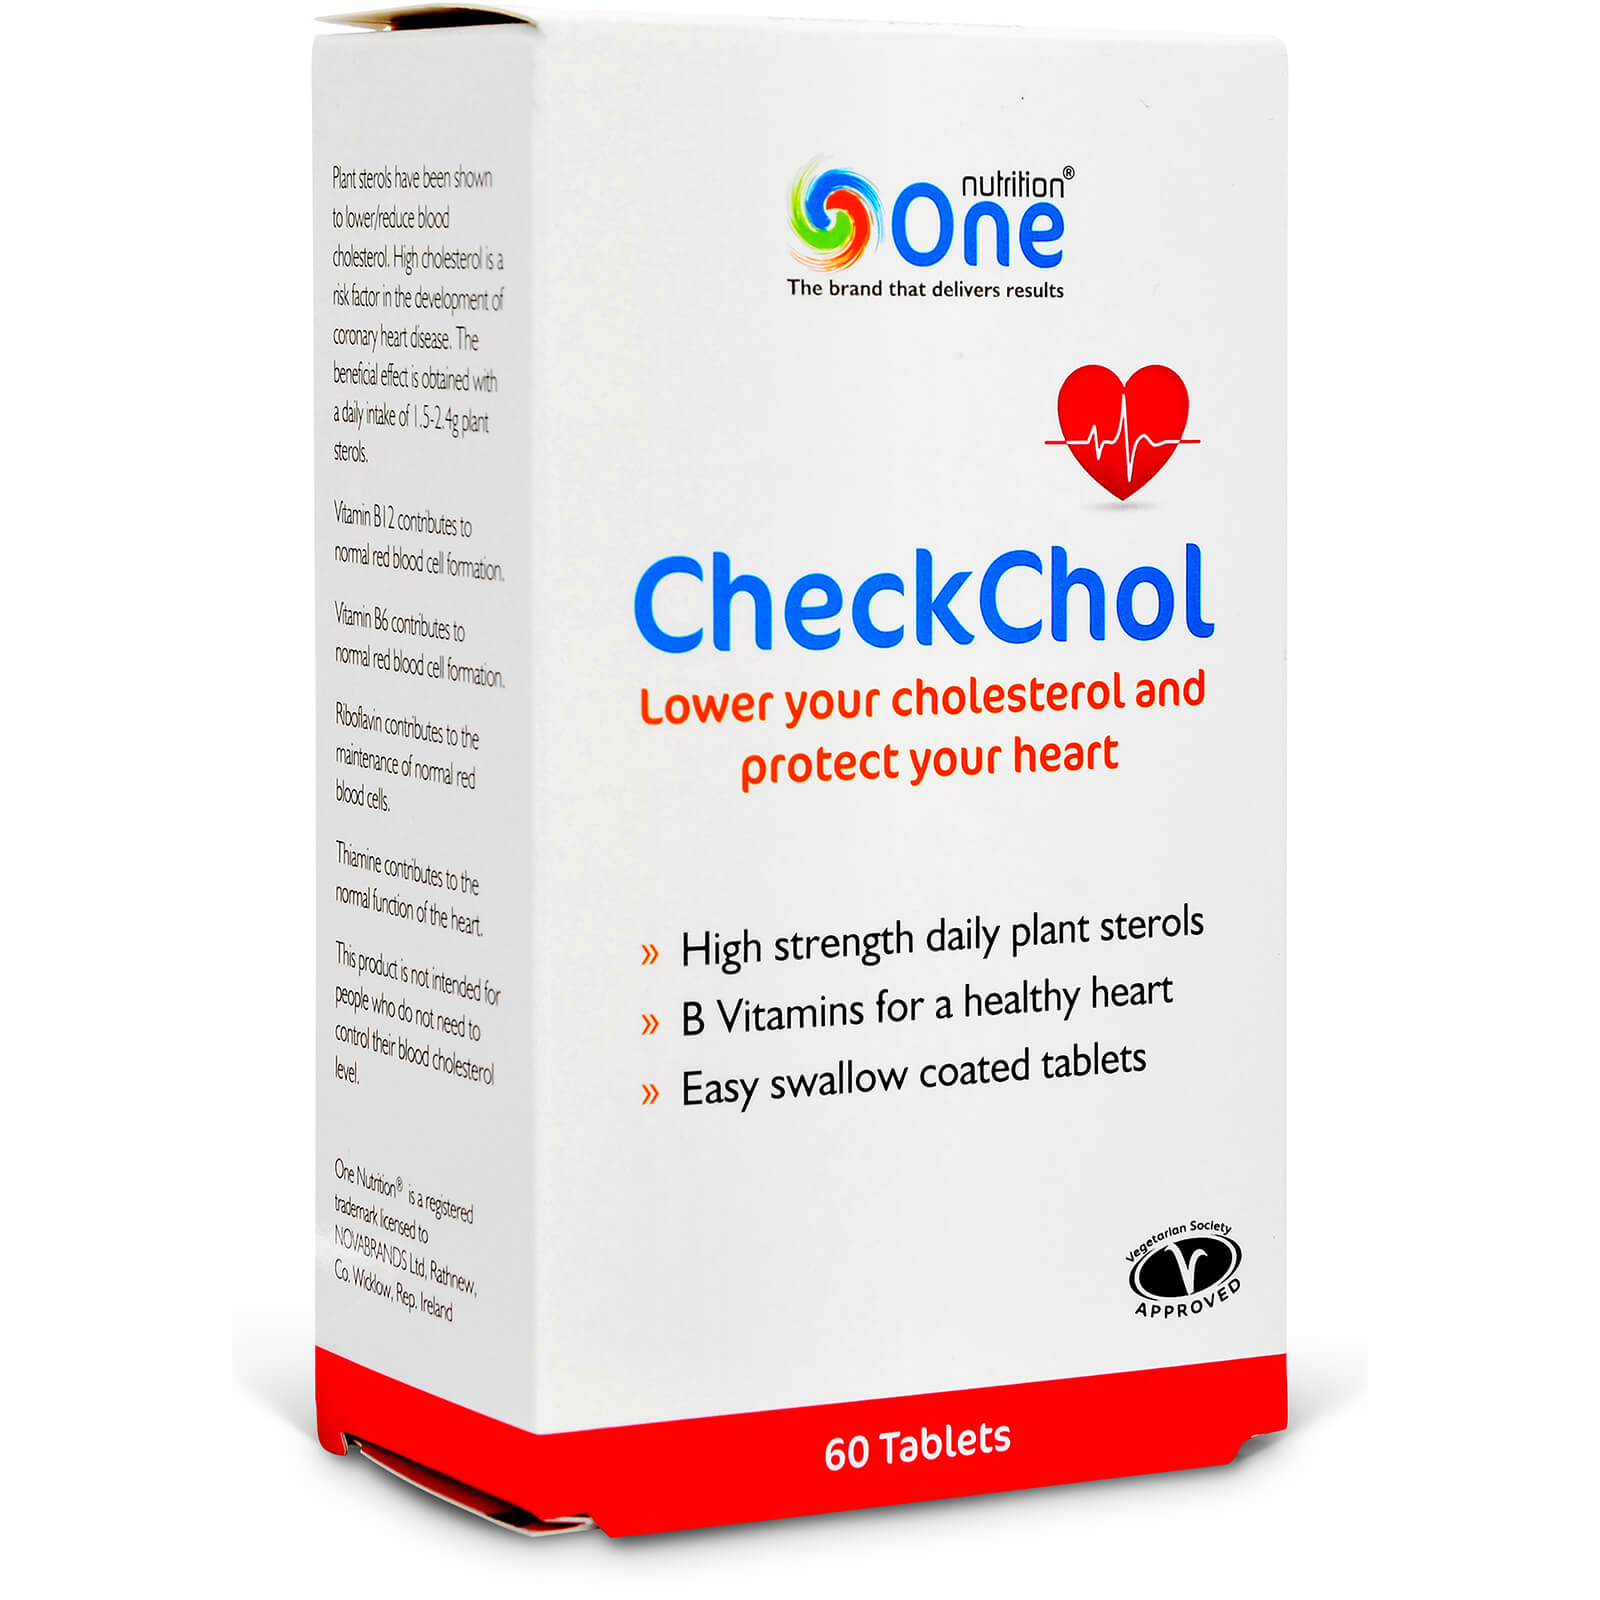 CheckChol Lower Your Cholesterol and Protect Your Heart - 60 Tablets